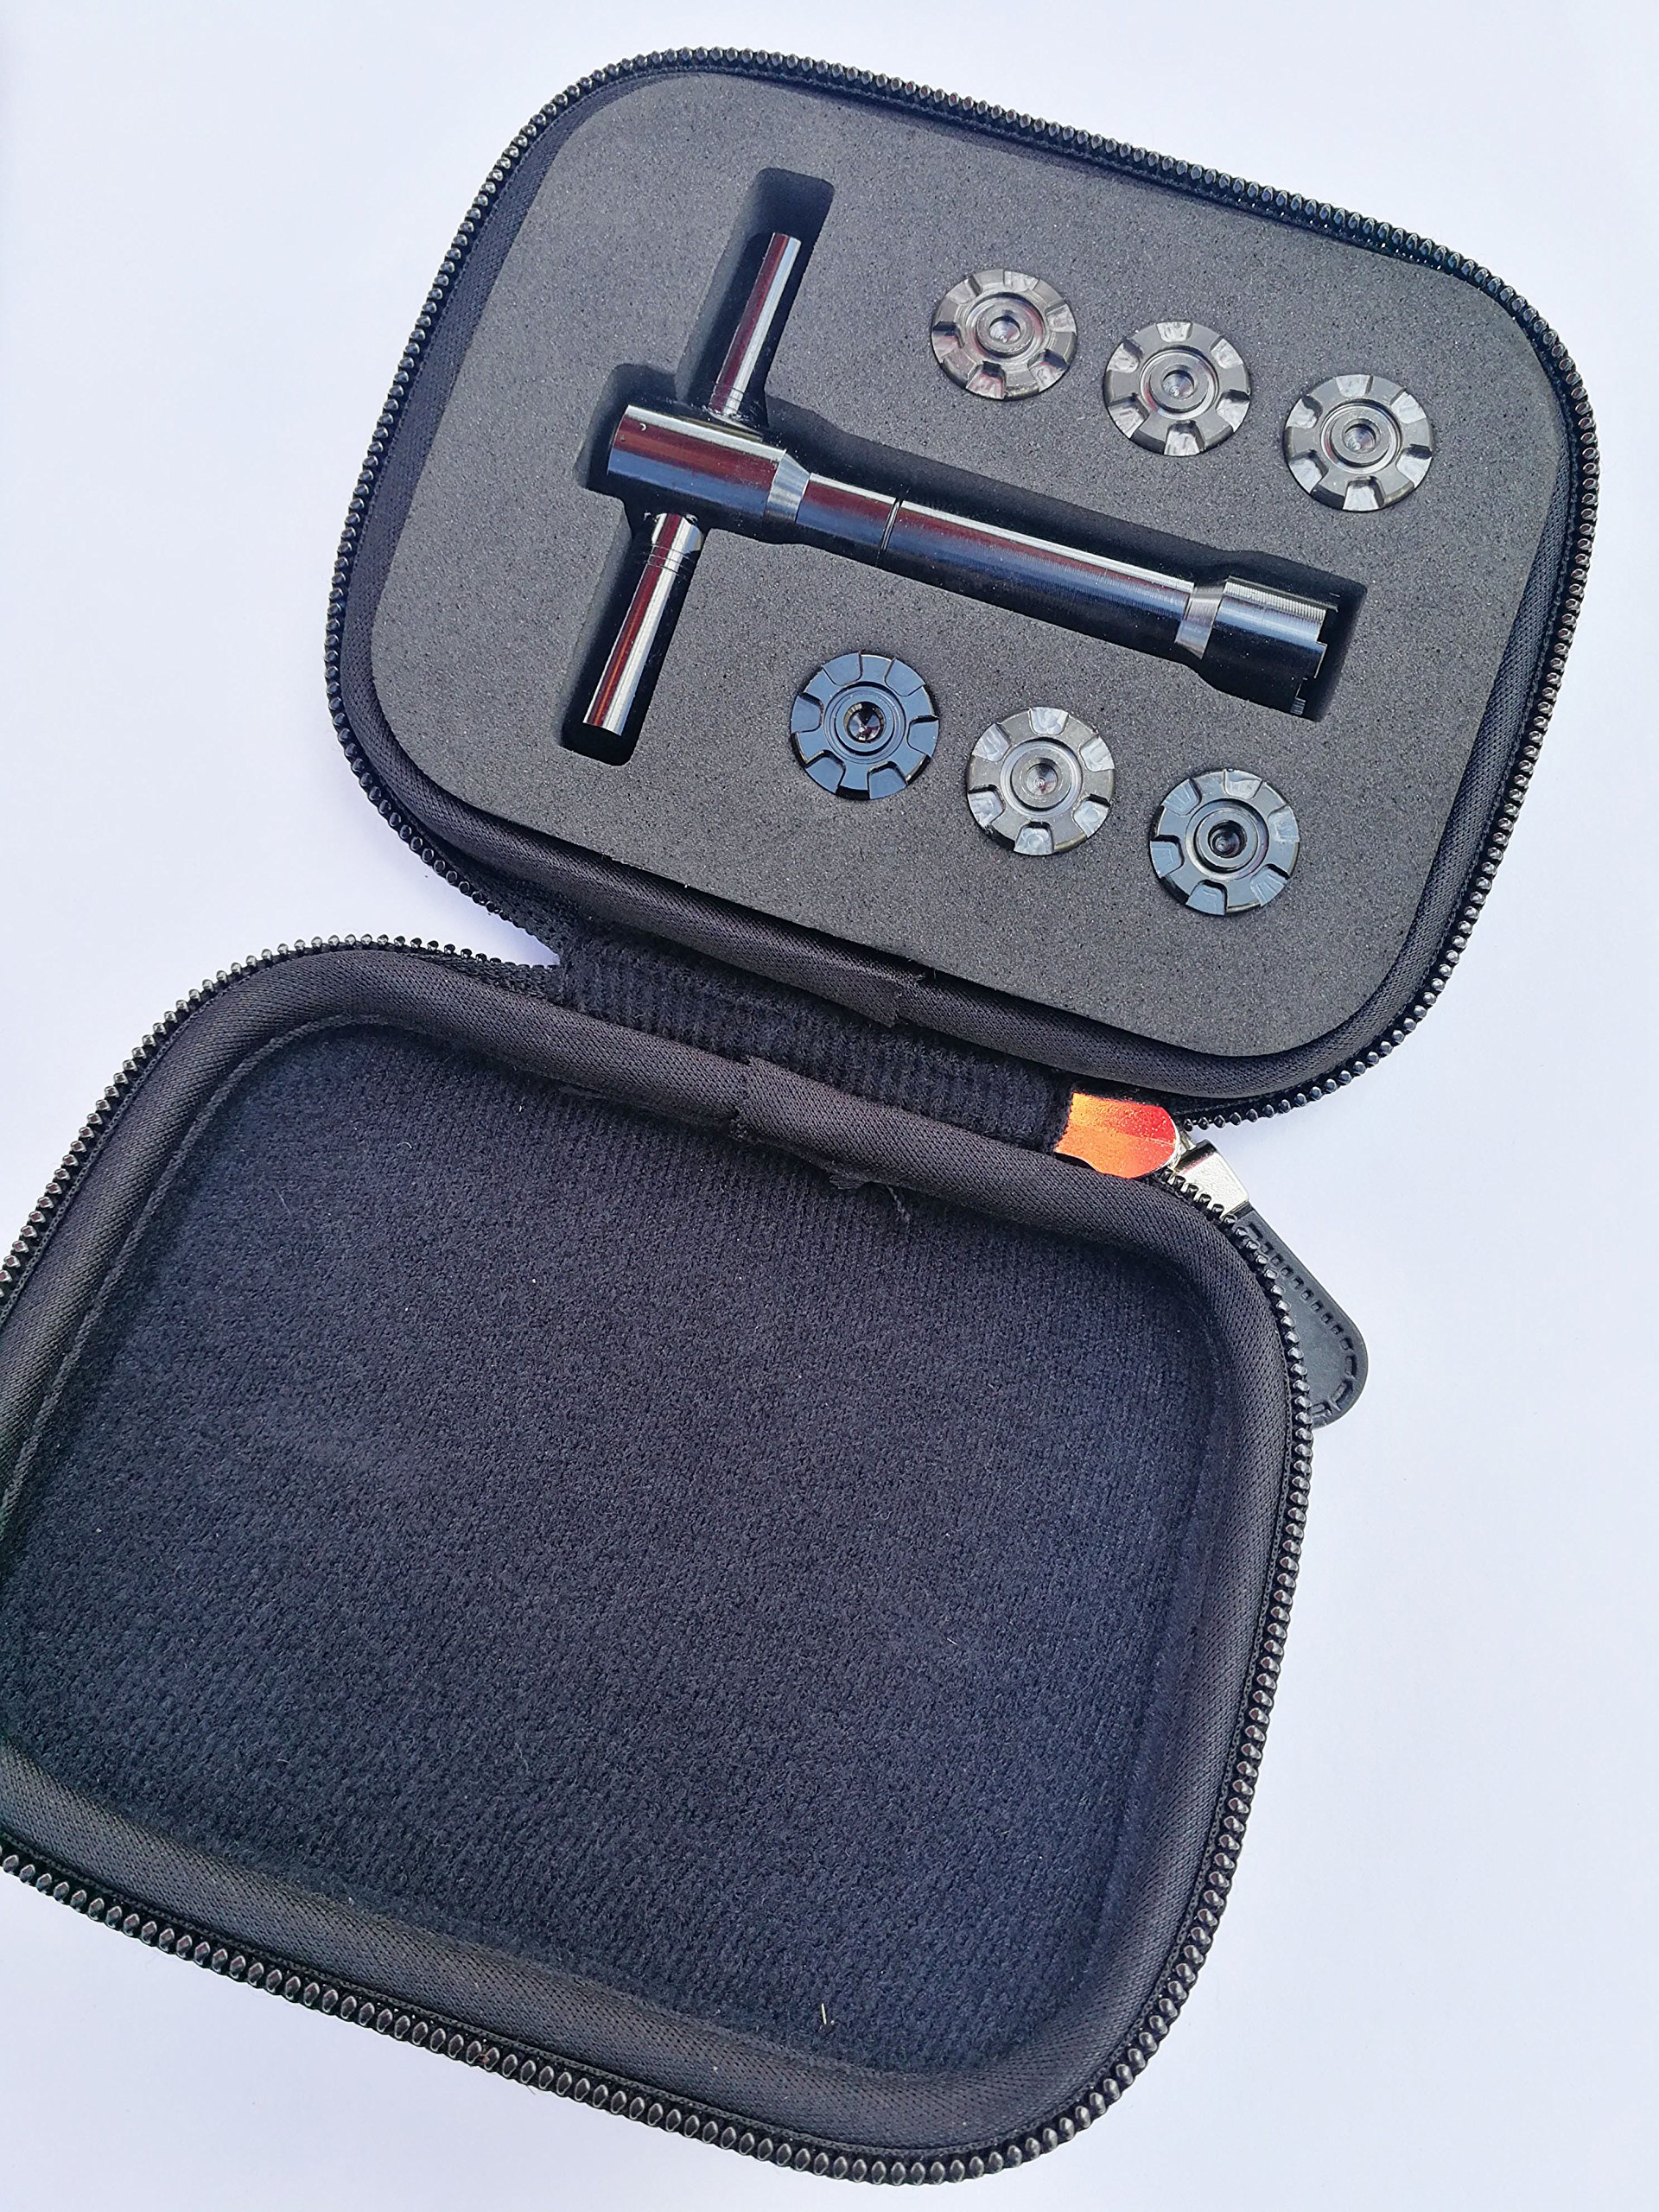 Histar Golf Weights Scews Kit + Wrench + Case for Ping G25 I25 fit Driver Fairway Wood Hybrid by Histar (Image #7)